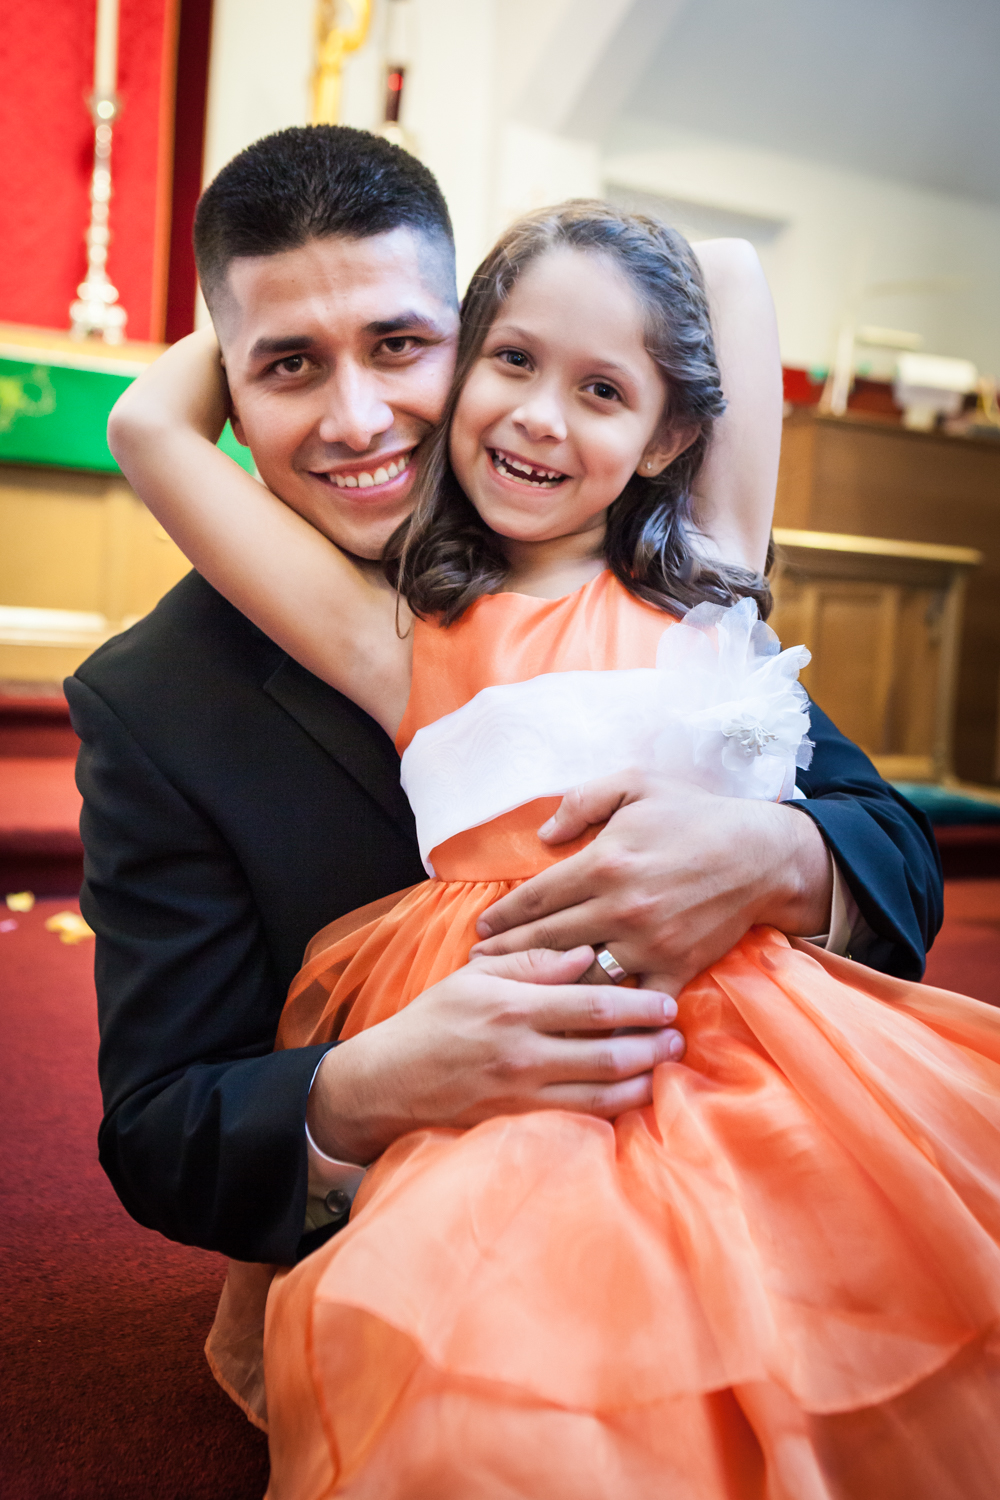 Groom  and little girl wearing orange dress smiling